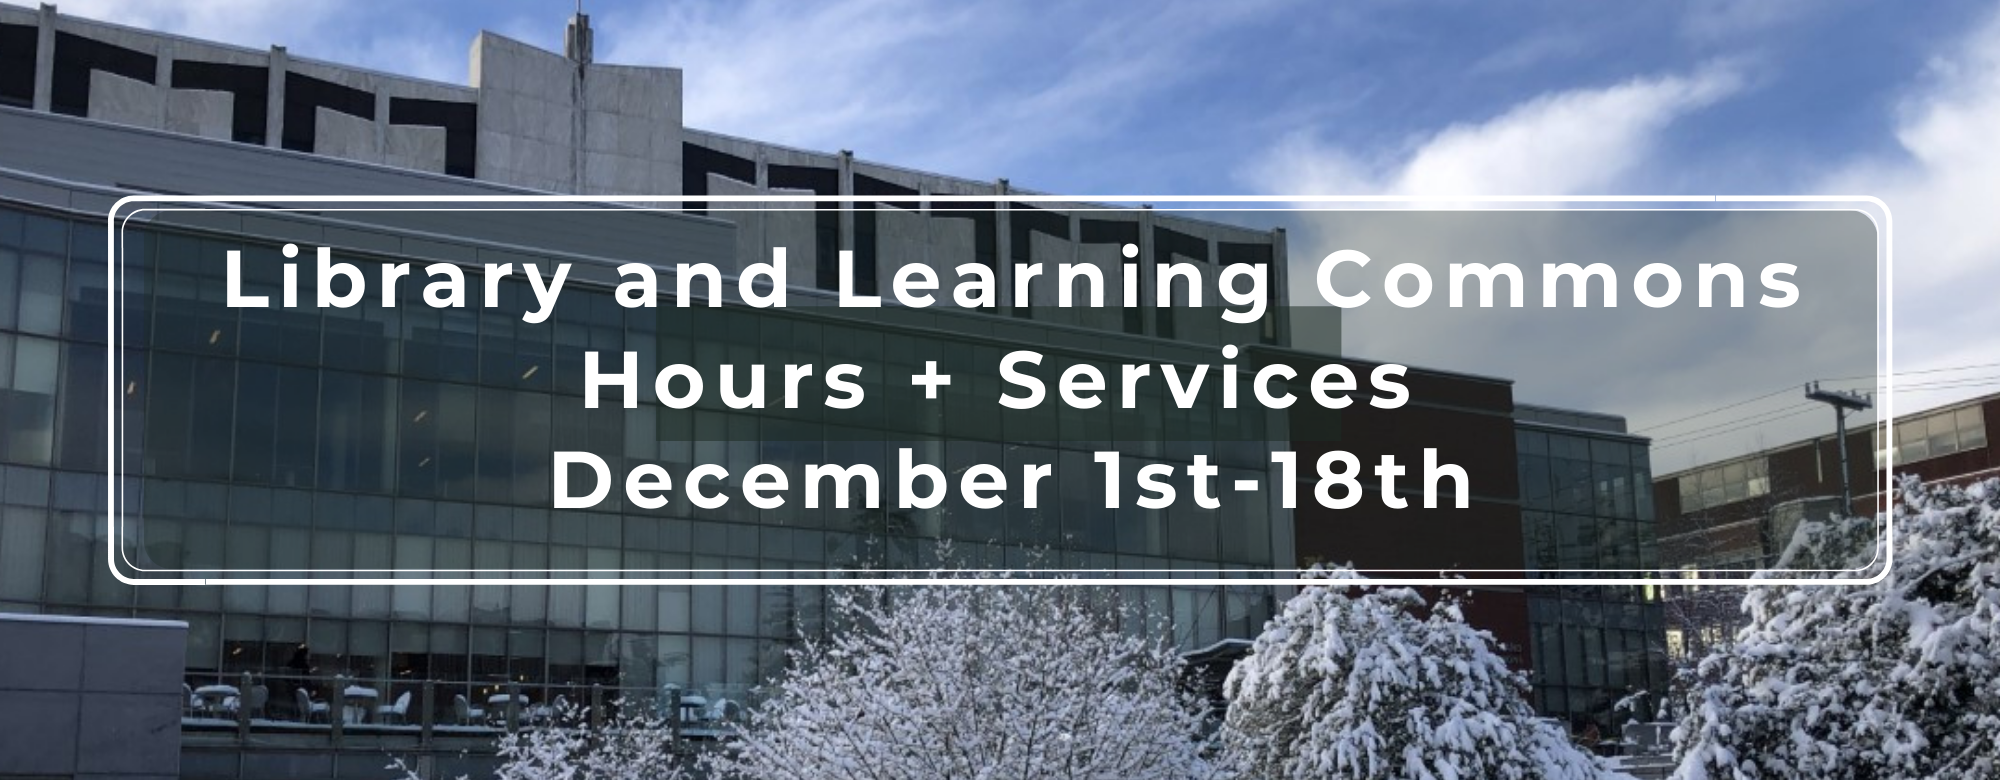 "image of south facade of lemieux library in the snow with a text overlay that reads ""library and learning commons hours + services December 1st - 18th"""